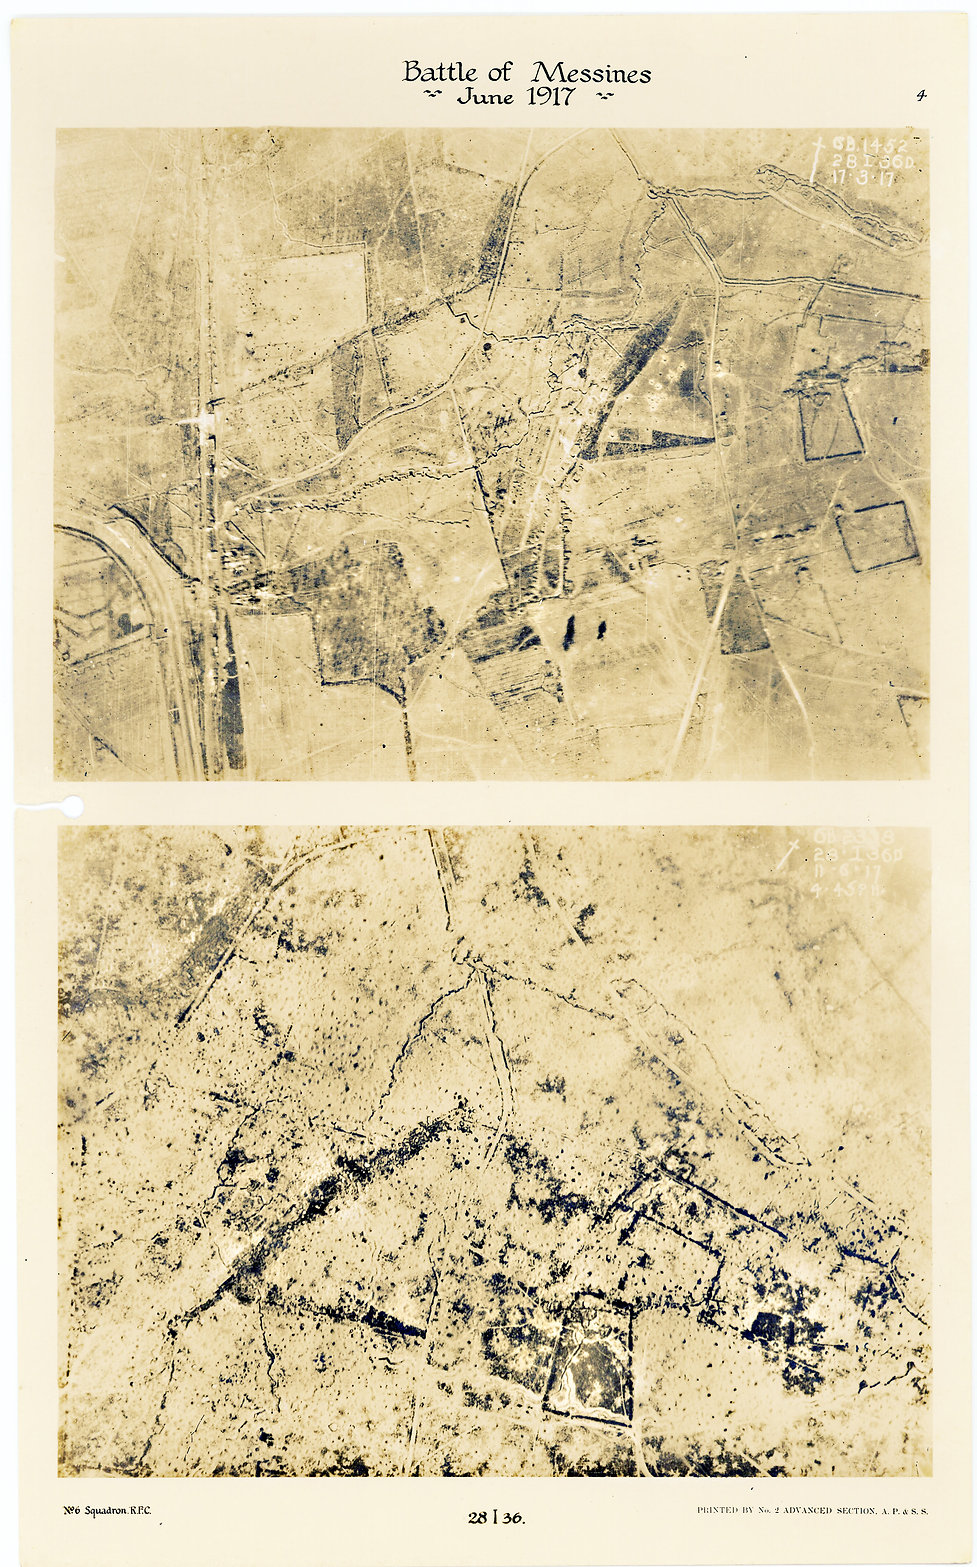 6 Squadron aerial photographs south of Klein Zillebeke, before and after the Battle of Messines